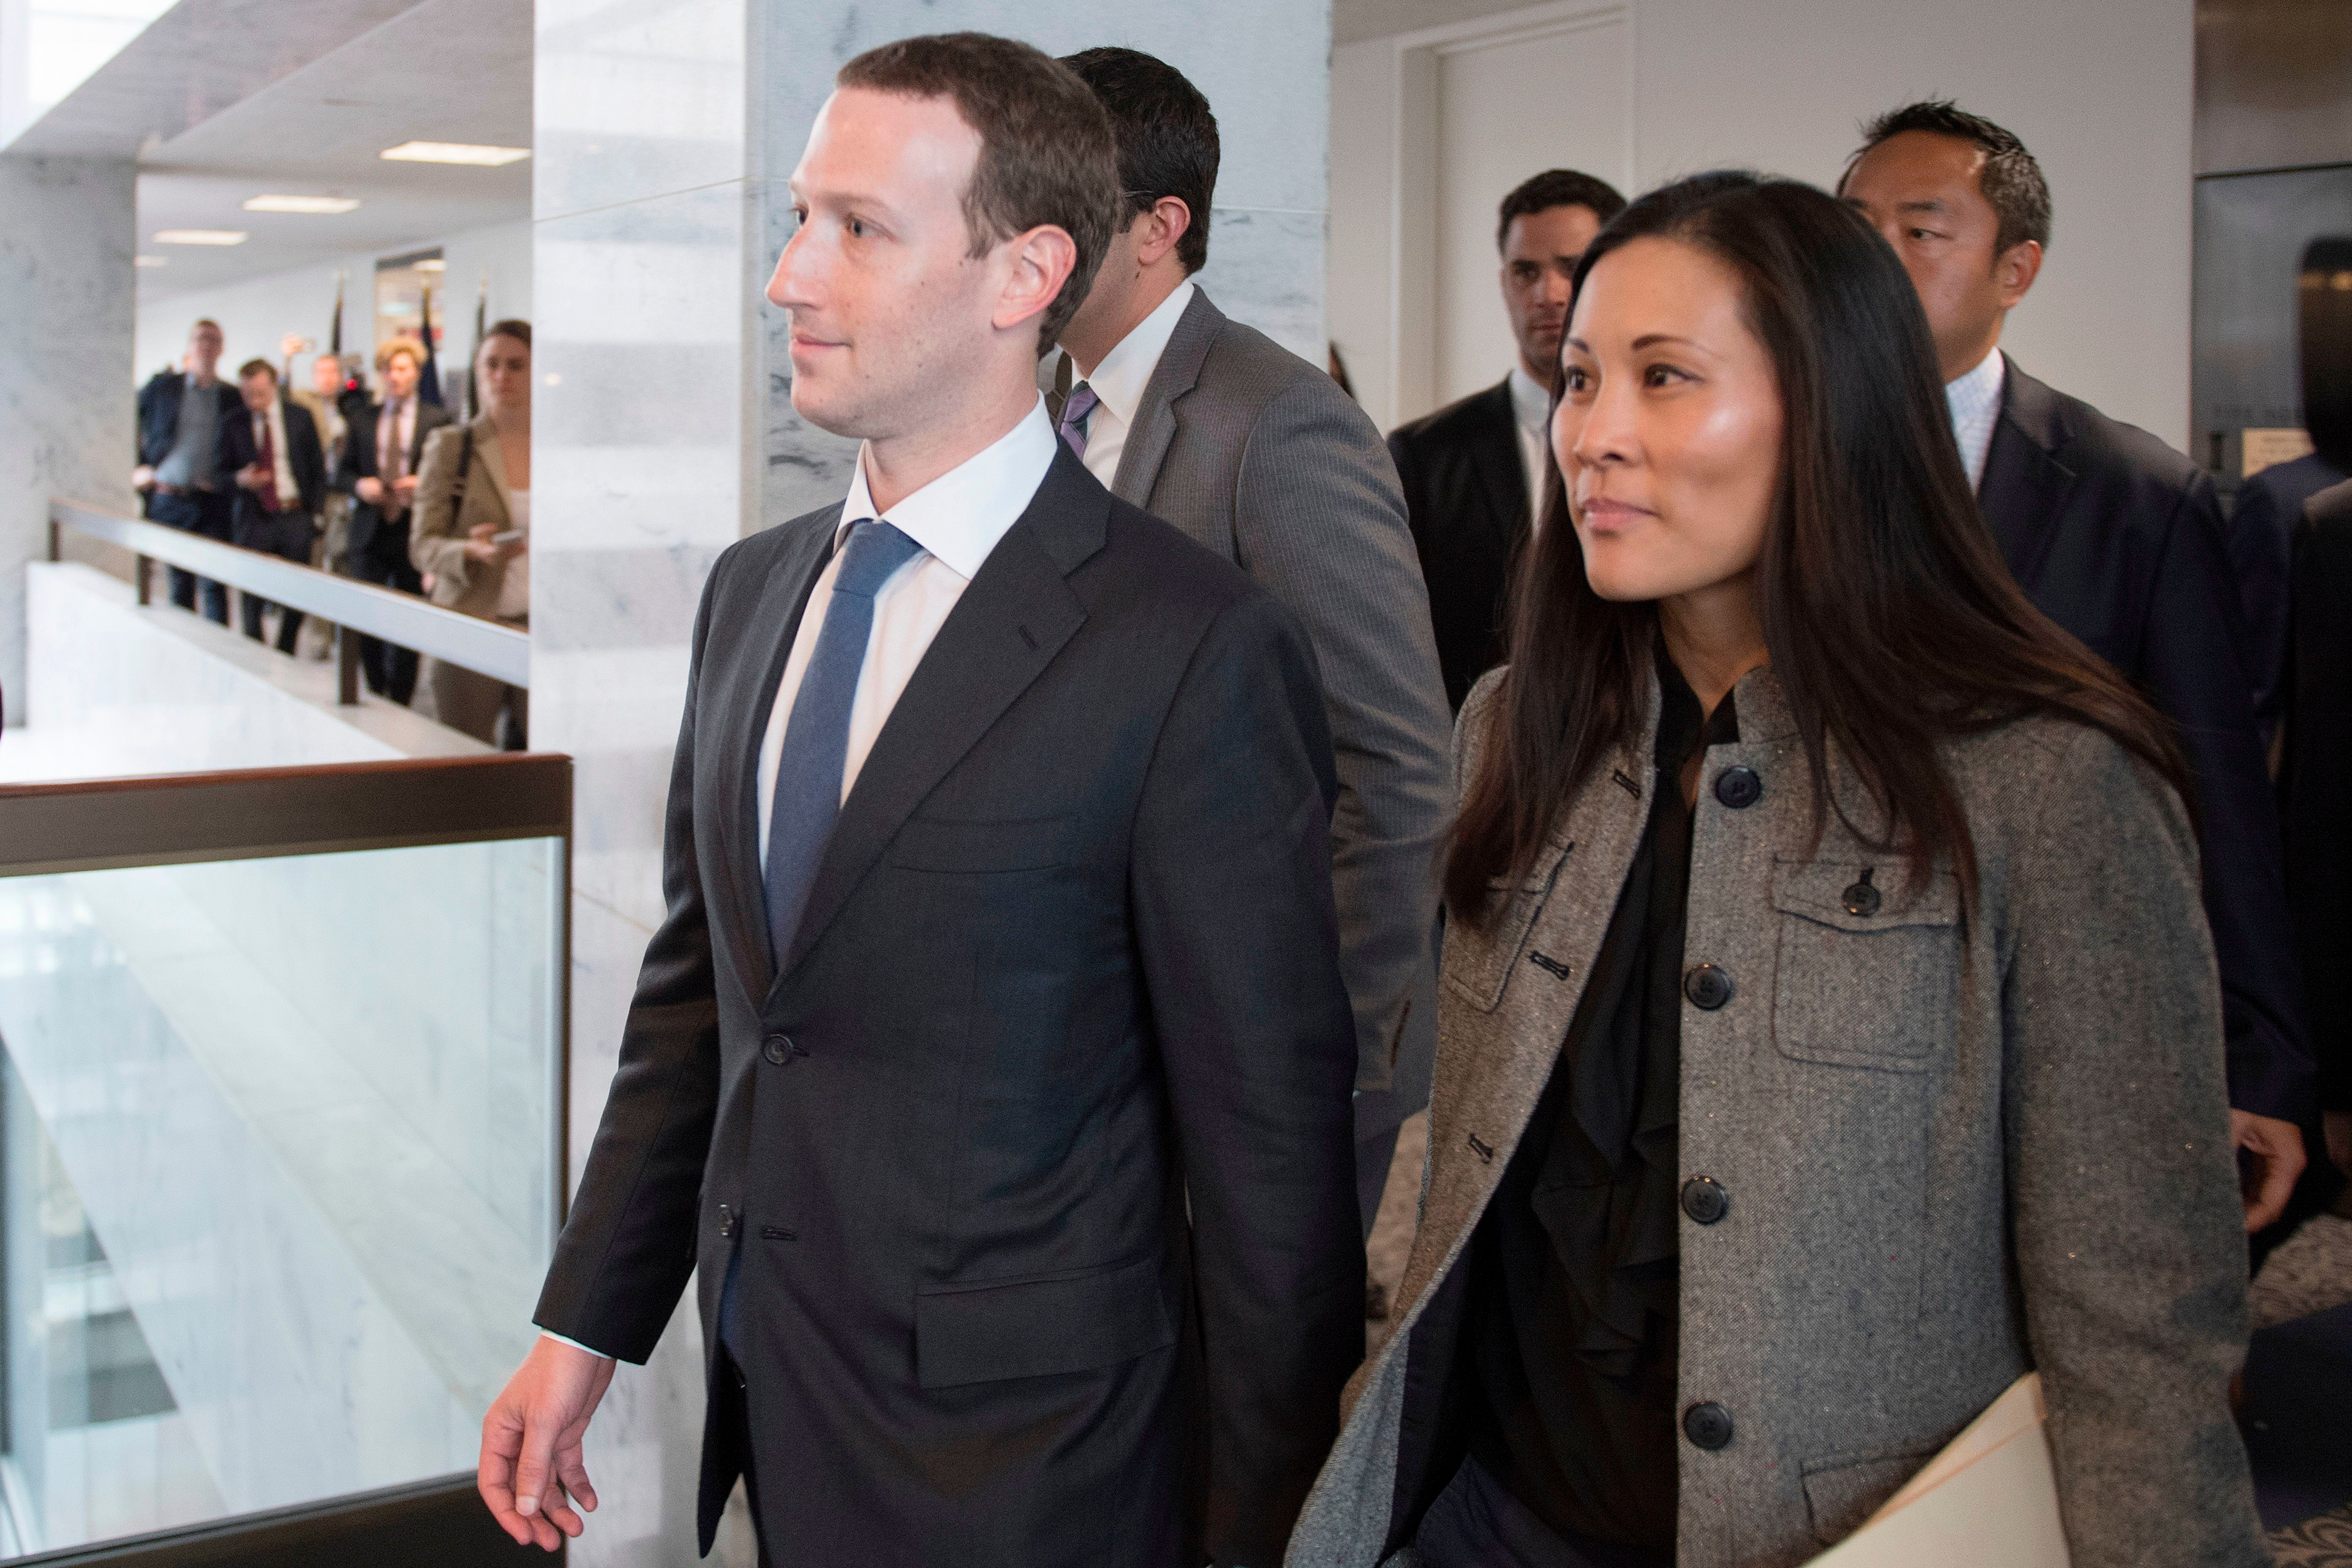 Mark Zuckerberg and Andrea Besmehn, Mark Zuckerbergs executive assistant at Facebook depart US Senator Bill Nelson's, D-Florida, office on Capitol Hill in Washington, DC, on April 9, 2018. Embattled Facebook chief Mark Zuckerberg has placed the blame for security lapses at the world's largest social network squarely on himself as he girded Monday for appearances this week before angry lawmakers.In prepared remarks released by a congressional panel, Zuckerberg admitted he was too idealistic and failed to grasp how the platform -- used by two billion people -- could be abused and manipulated.  / AFP PHOTO / JIM WATSON / The erroneous mention[s] appearing in the metadata of this photo by JIM WATSON has been modified in AFP systems in the following manner: [Andrea Besmehn (R), Mark Zuckerbergs executive assistant at Facebook] instead of [Priscilla Chan]. Please immediately remove the erroneous mention[s] from all your online services and delete it (them) from your servers. If you have been authorized by AFP to distribute it (them) to third parties, please ensure that the same actions are carried out by them. Failure to promptly comply with these instructions will entail liability on your part for any continued or post notification usage. Therefore we thank you very much for all your attention and prompt action. We are sorry for the inconvenience this notification may cause and remain at your disposal for any further information you may require.        (Photo credit should read JIM WATSON/AFP/Getty Images)